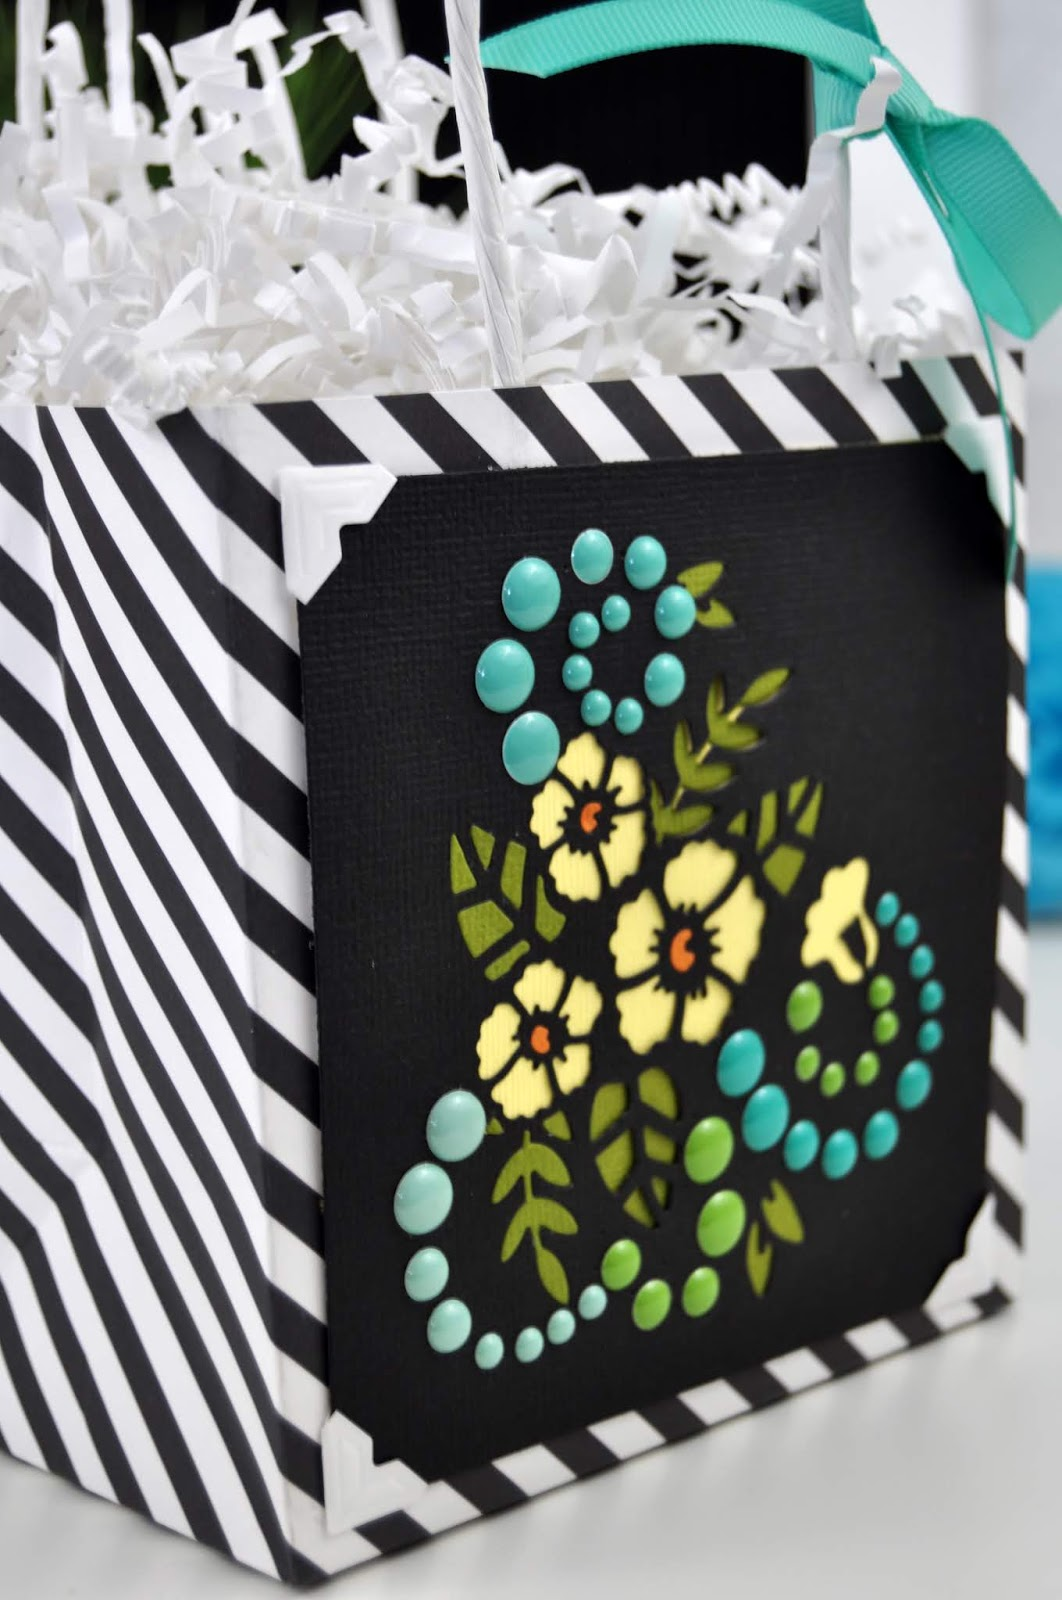 Die Cut Flower Gift Bag Tutorial with Jen Gallacher for Scrapbook.com #giftbag #papercraft #scrapbookdotcom #jengallacher